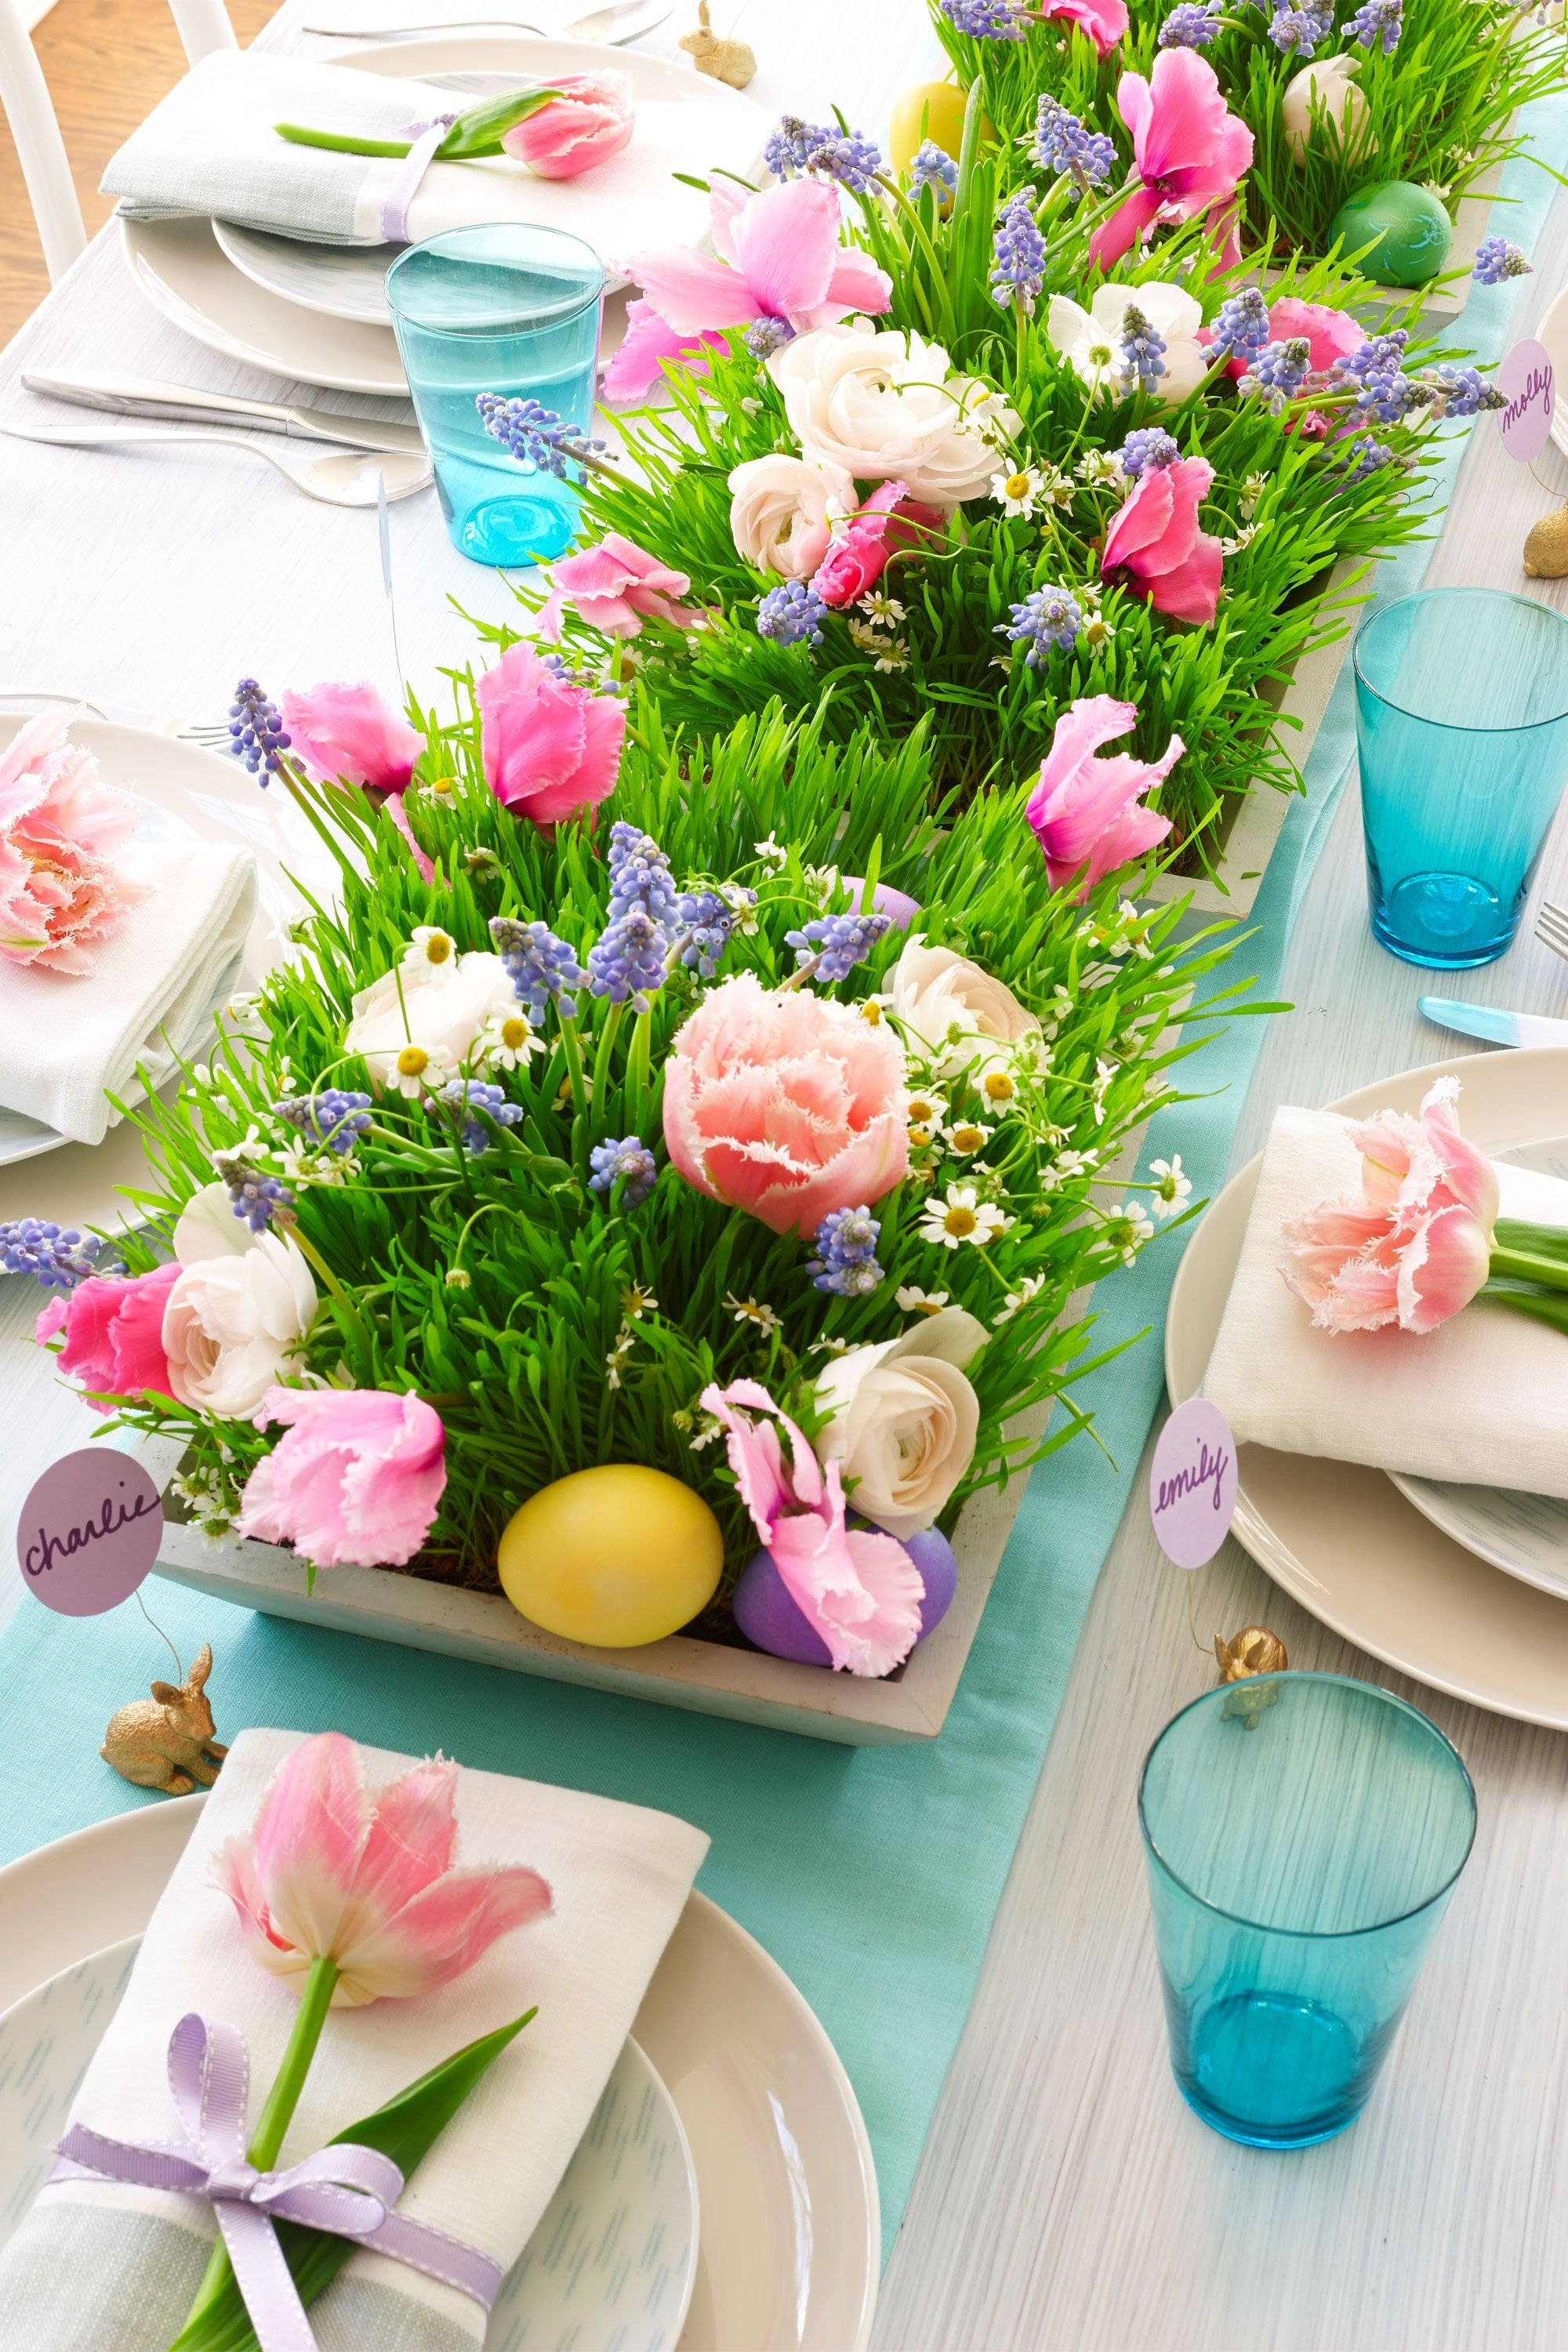 10 Best Easter Decorating Ideas Table Setting 24 easter table decorations table decor ideas for easter brunch 1